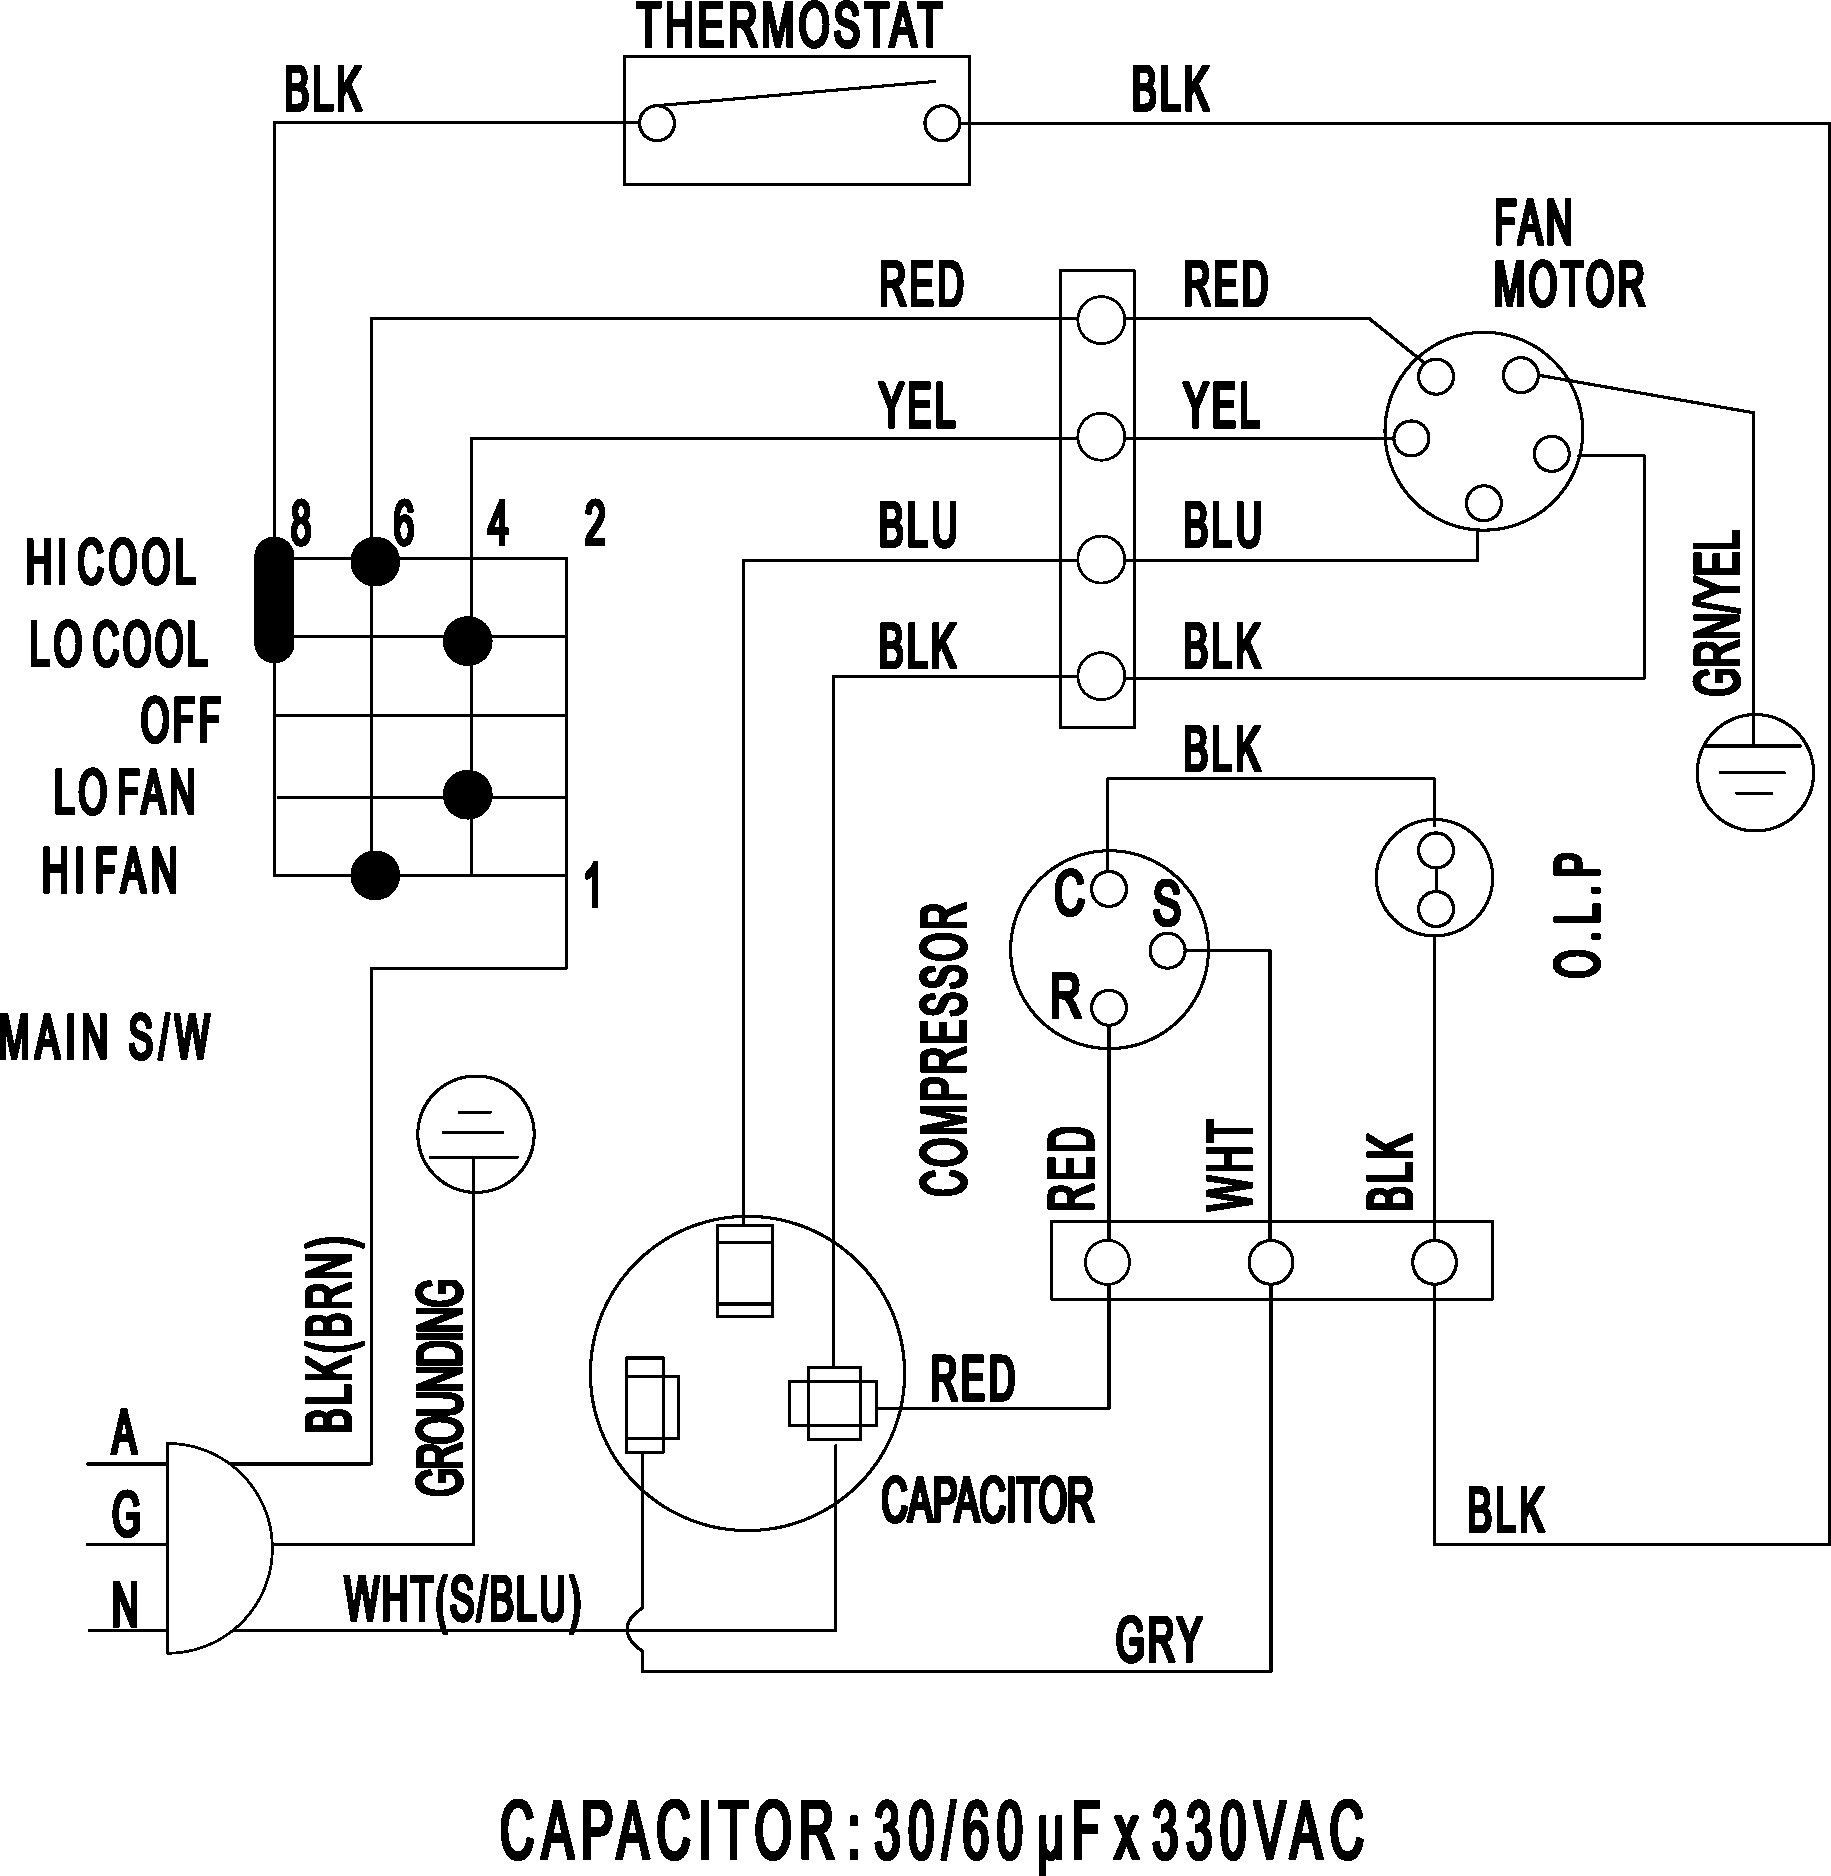 Air Conditioner Wiring Diagram Incredible Wiring Diagram Ac Split Copy Carrier Air for is A System Of Air Conditioner Wiring Diagram